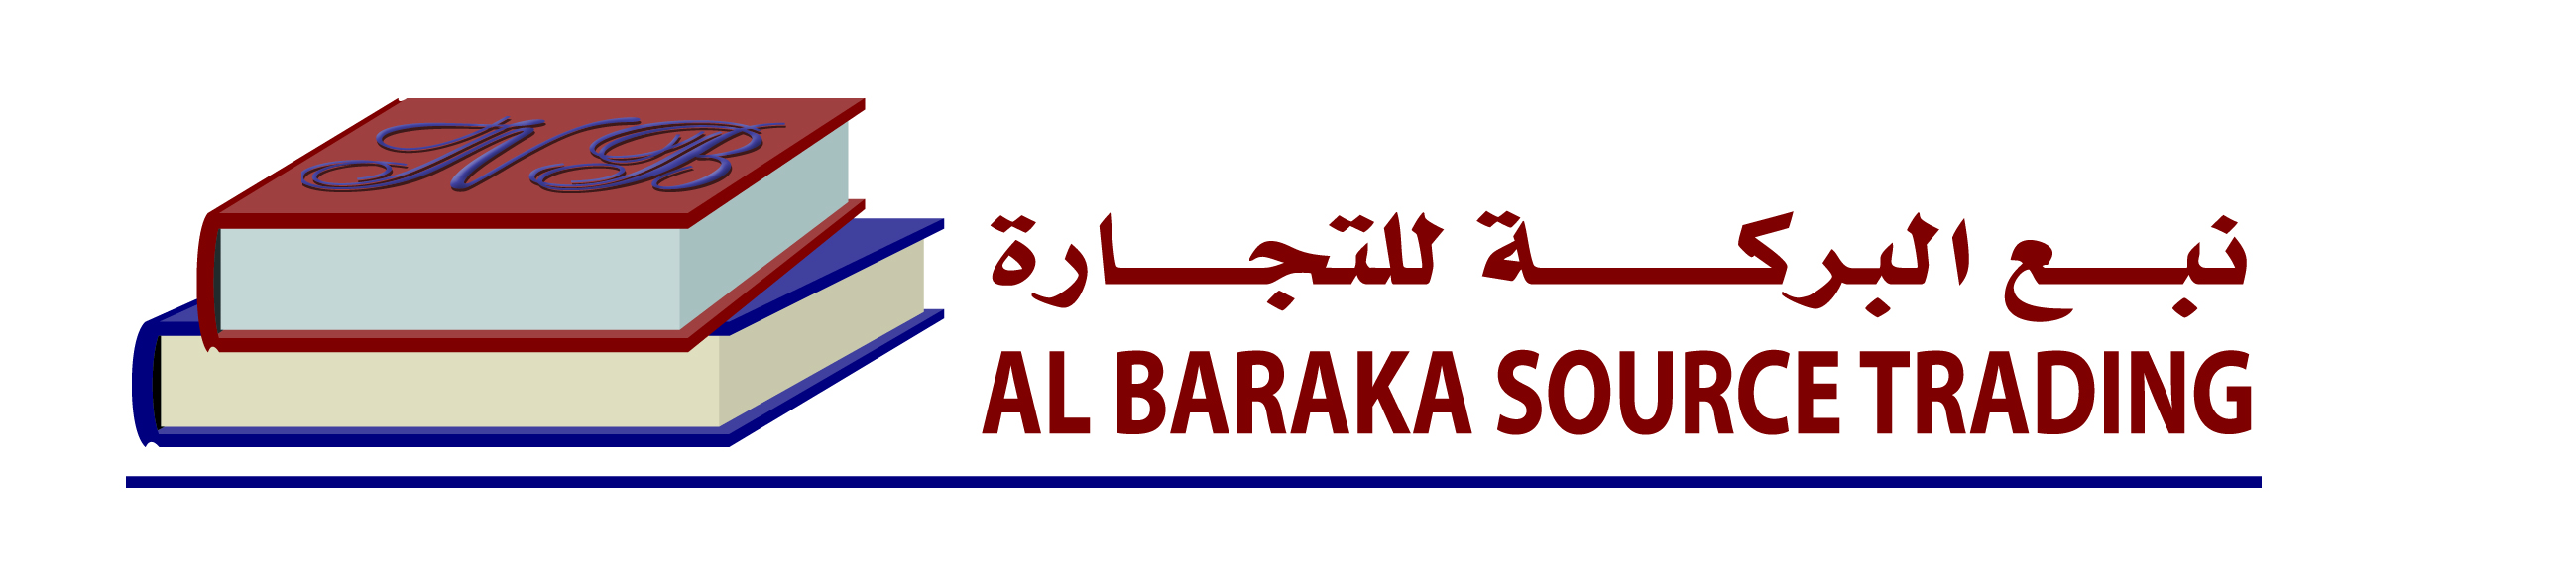 Al Baraka Source Trading